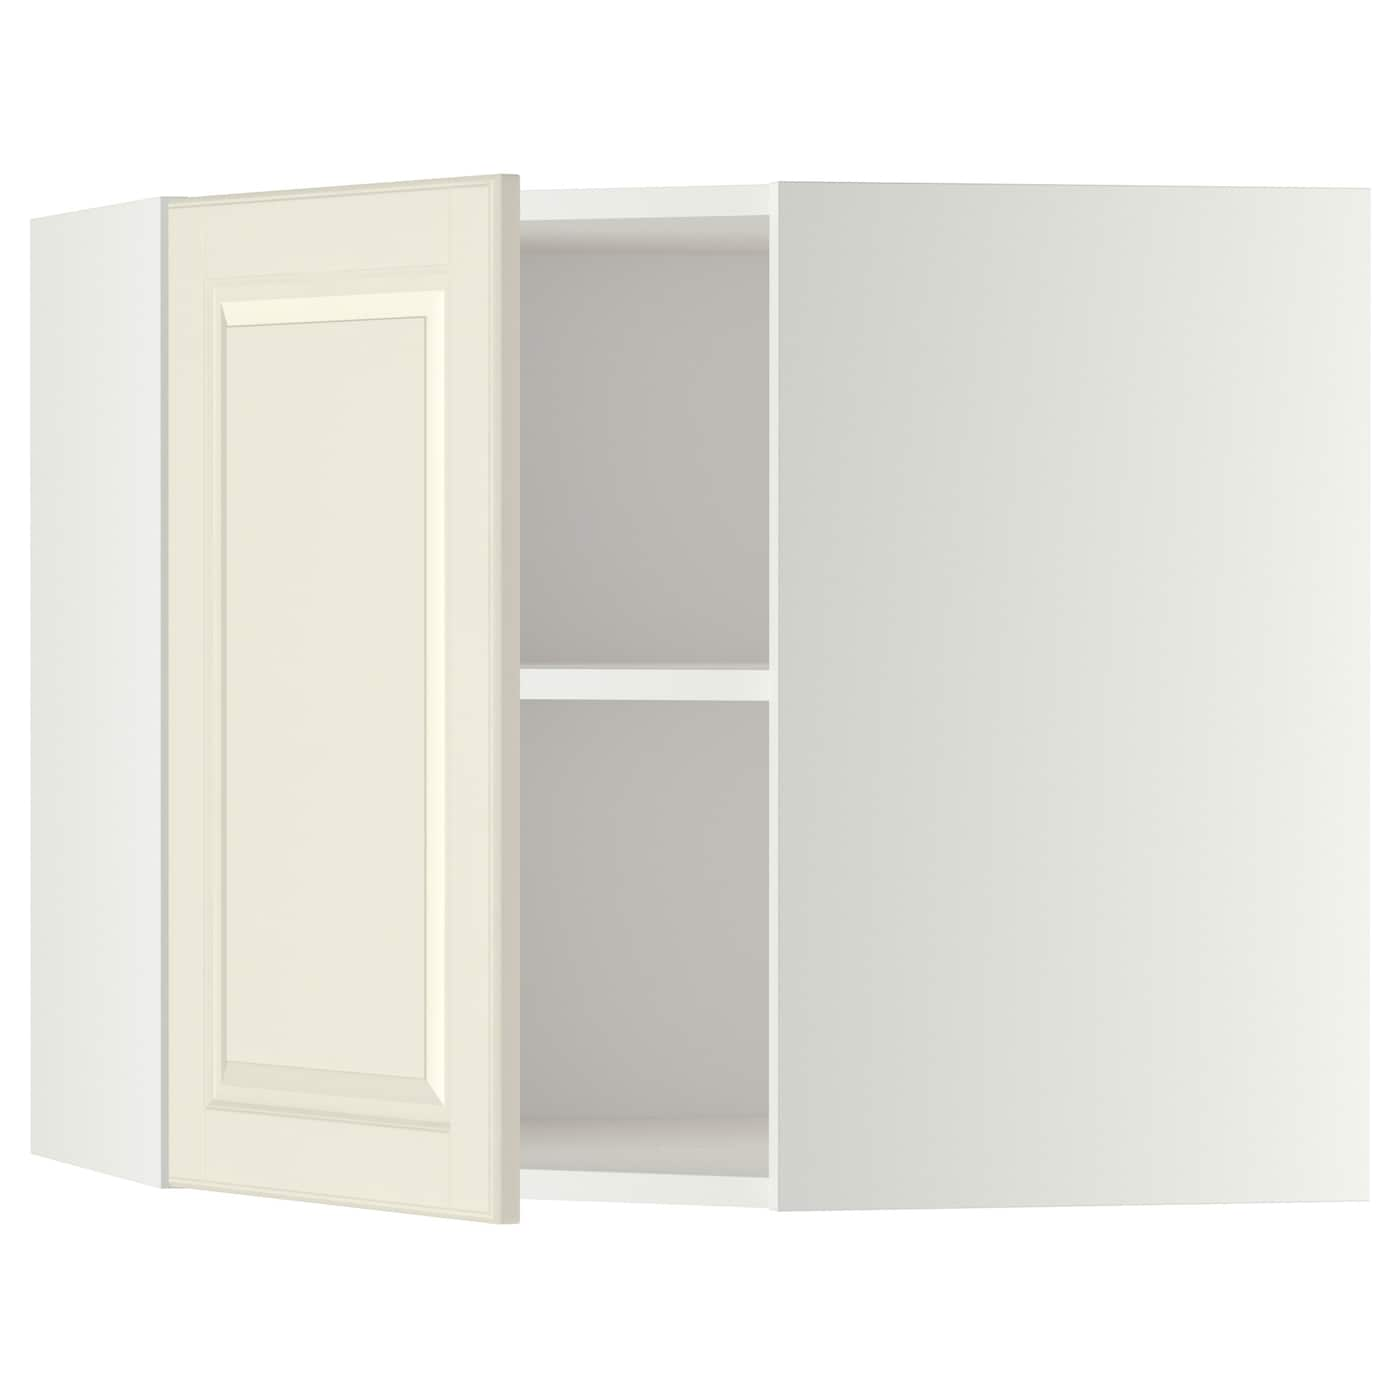 IKEA METOD Corner Wall Cabinet With Shelves Sturdy Frame Construction, 18  Mm Thick.